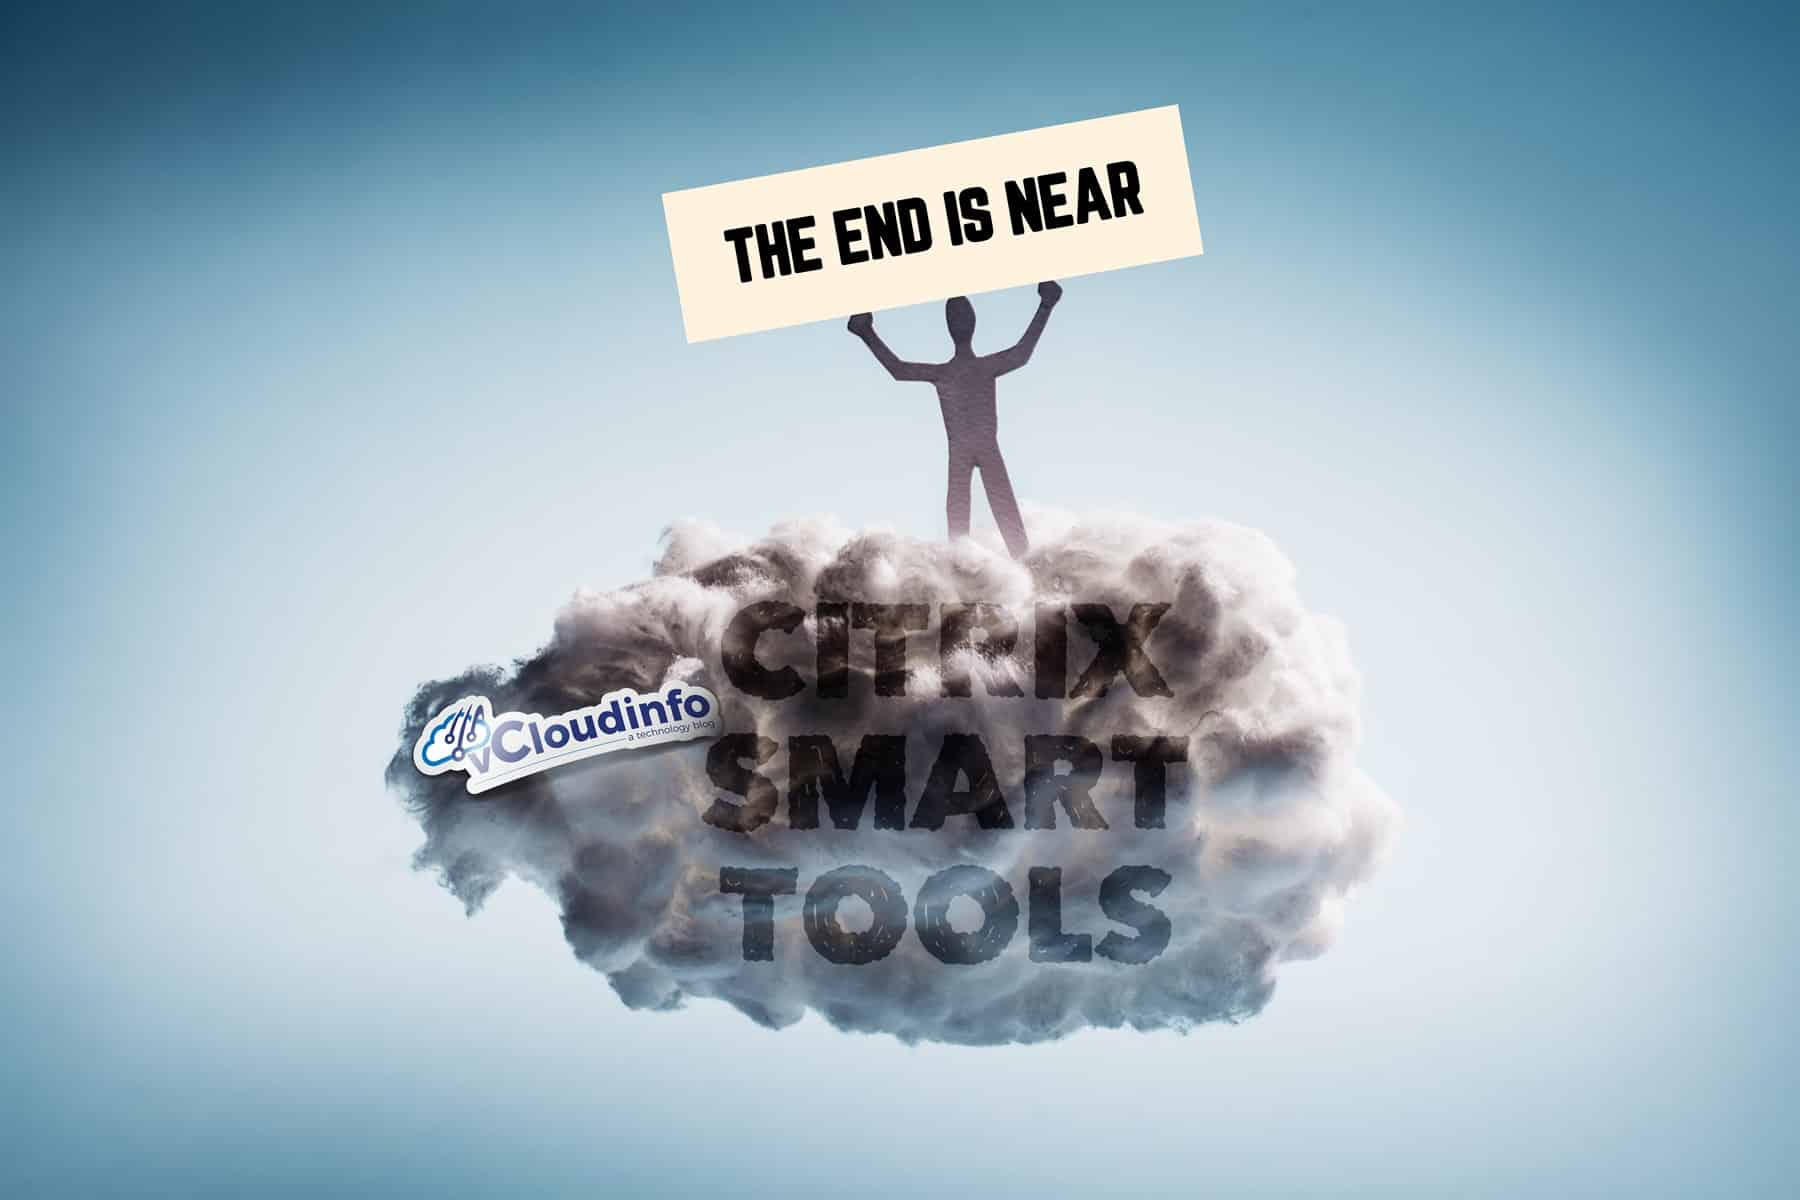 Citrix Smart Tools End Of Life'd May 31st! | vCloudInfo